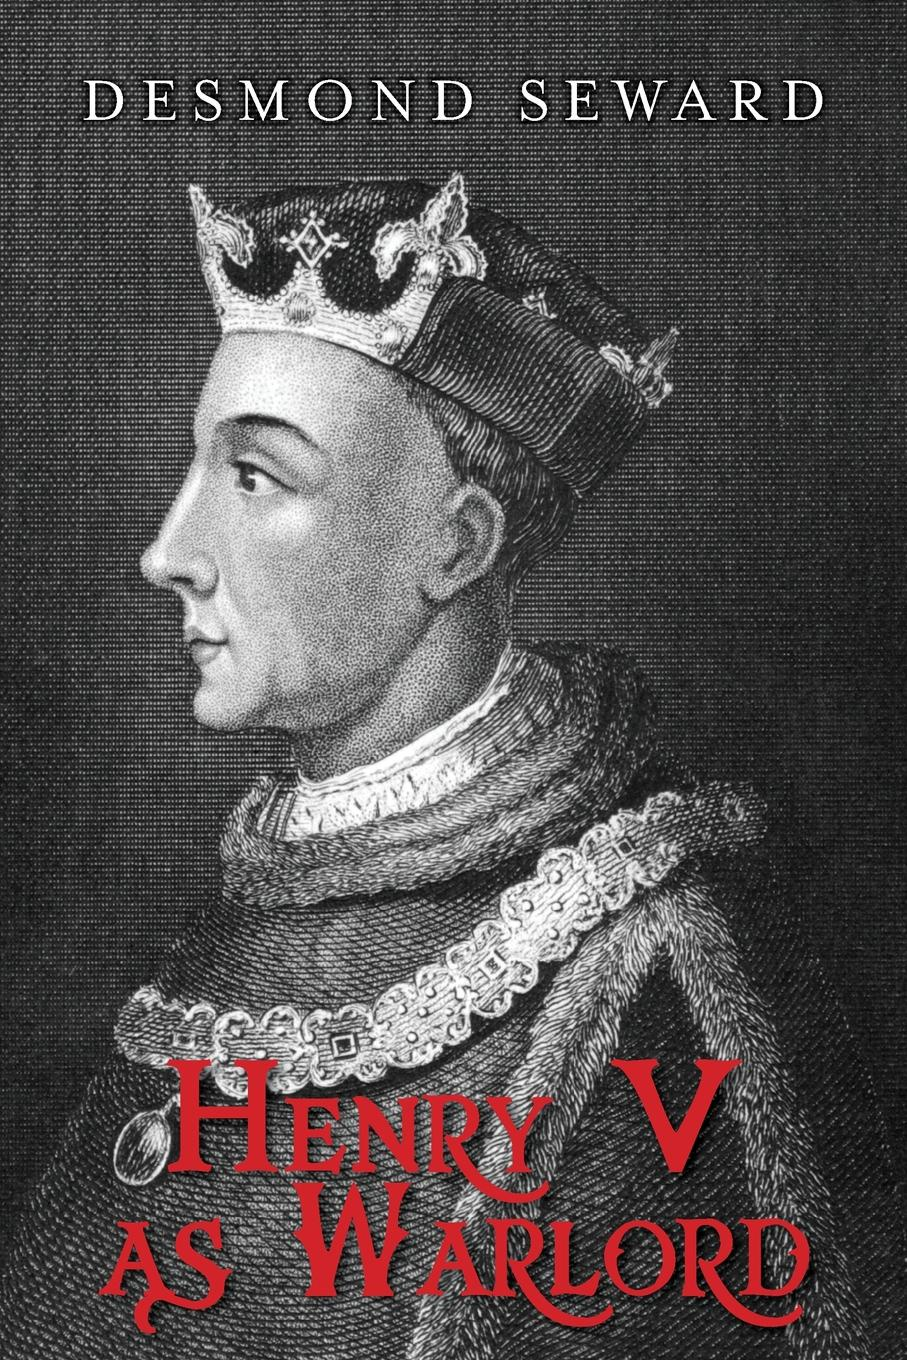 Henry V as Warlord Henry V owed his popularity to victories against the French which...